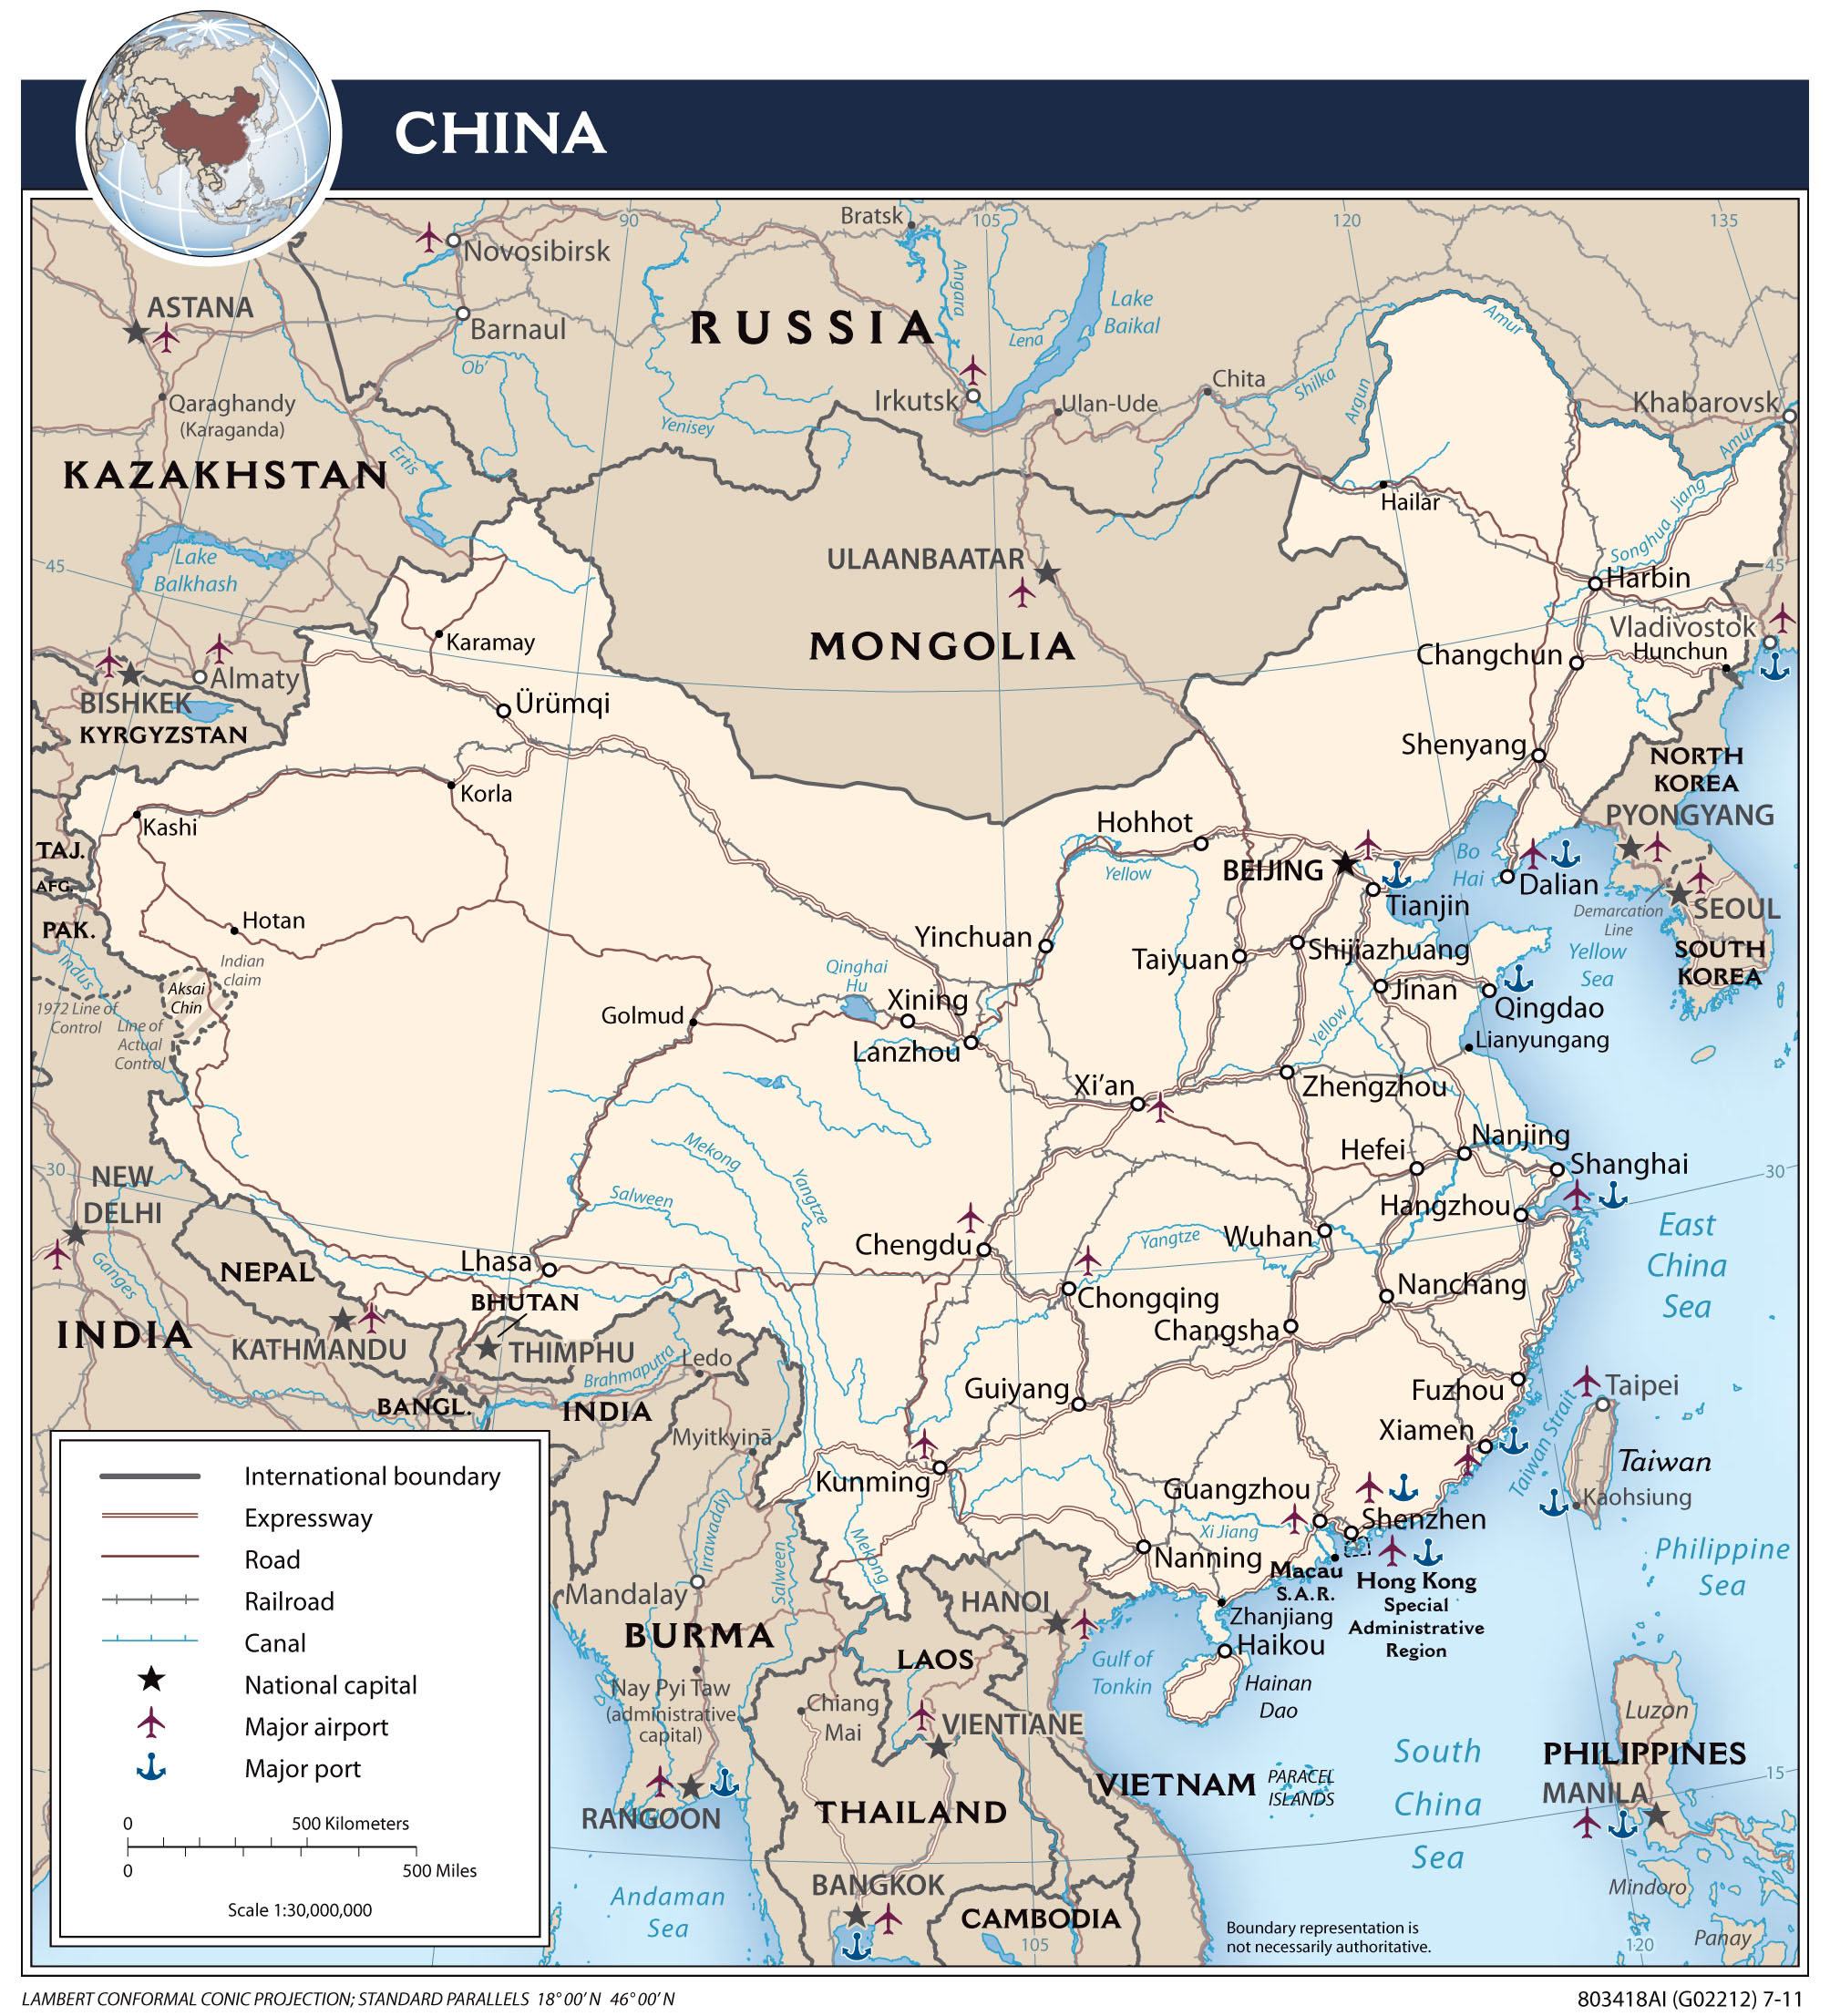 china map major cities Large Detailed Political Map Of China With Roads Major Cities And china map major cities